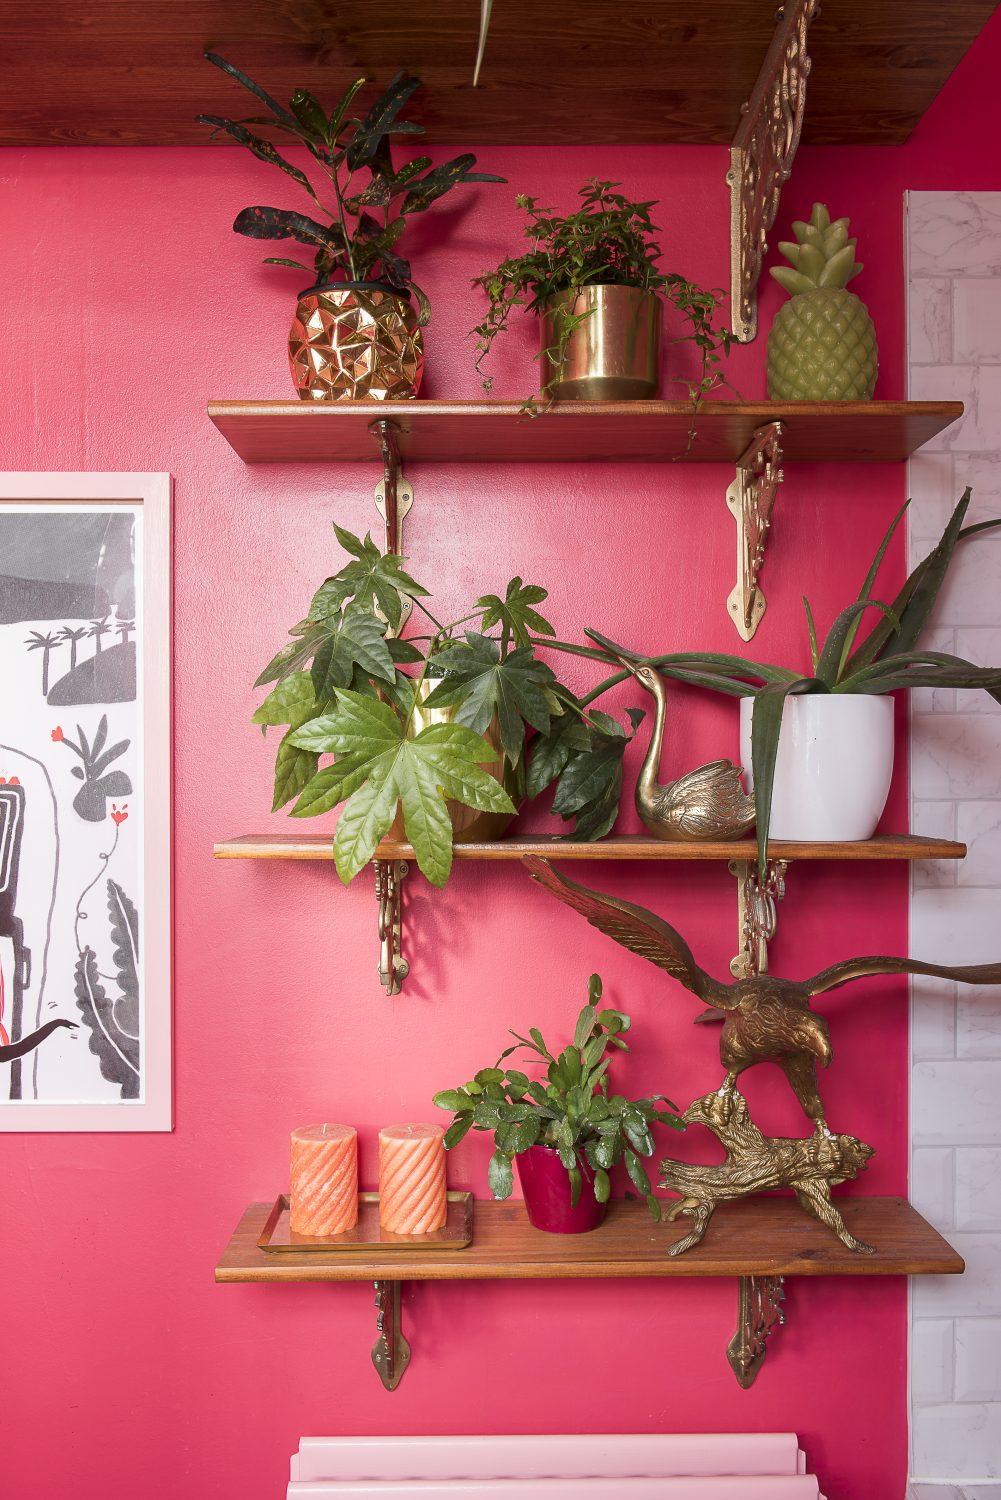 Amy has used ferns and evergreens to bring a slightly Victorian parlour overlay to the look of the bathroom, despite its bright pink walls